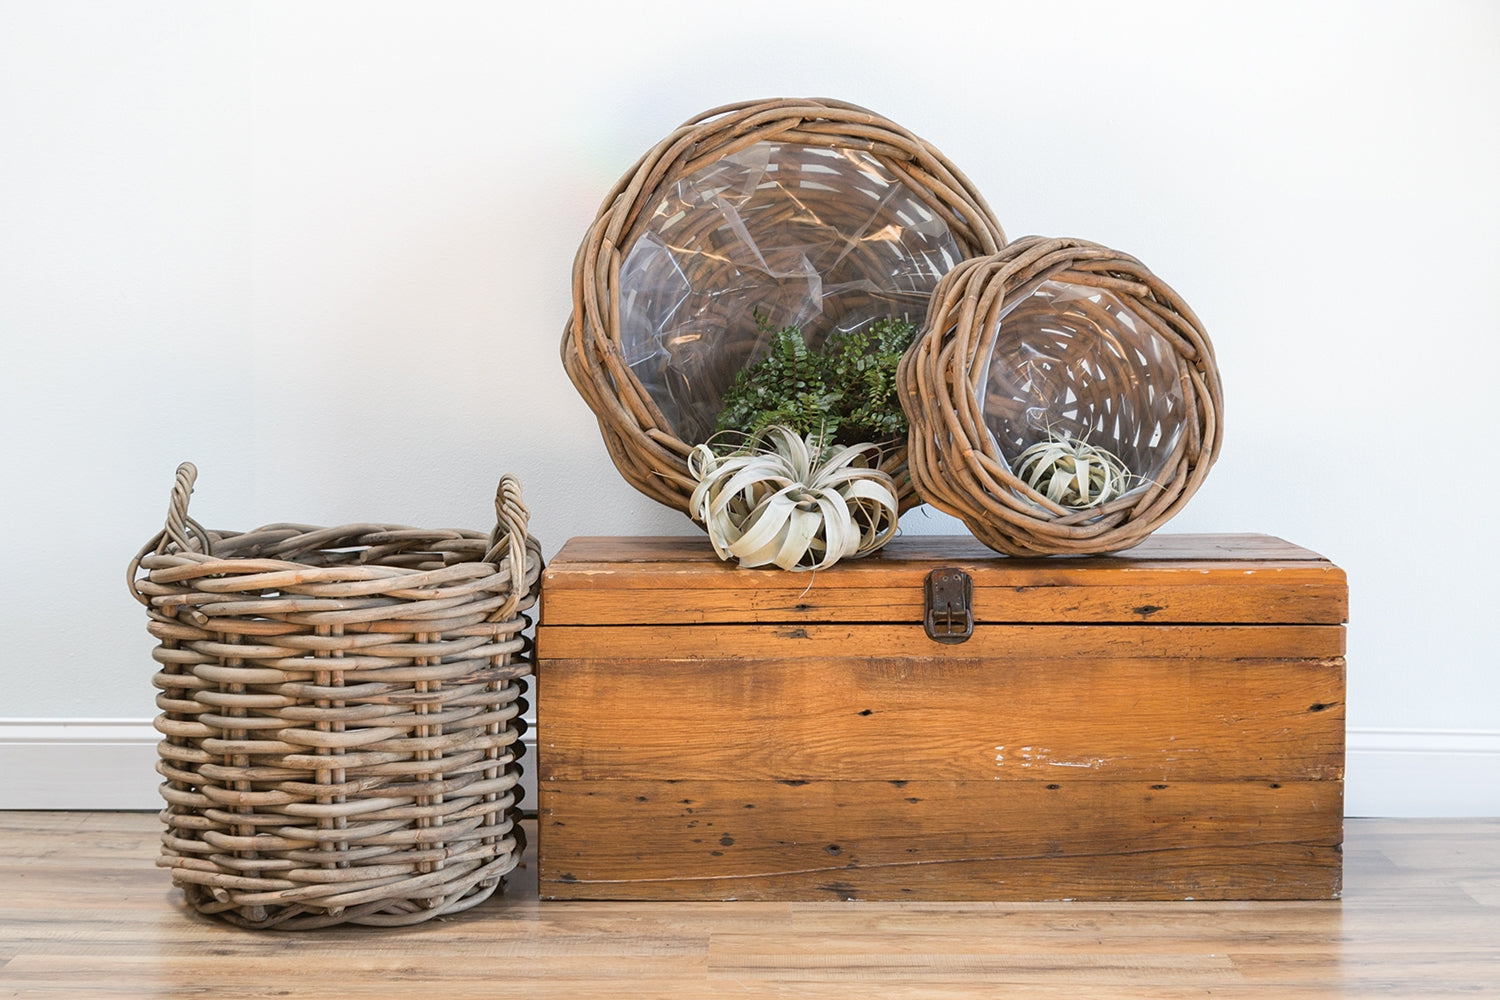 Cabana Collection Ratan Woven Basket+ Bowl by Accent Decor Colonial House of Flowers Atlanta Plants Vases Containers Florist Weddings Events Georgia Southern South